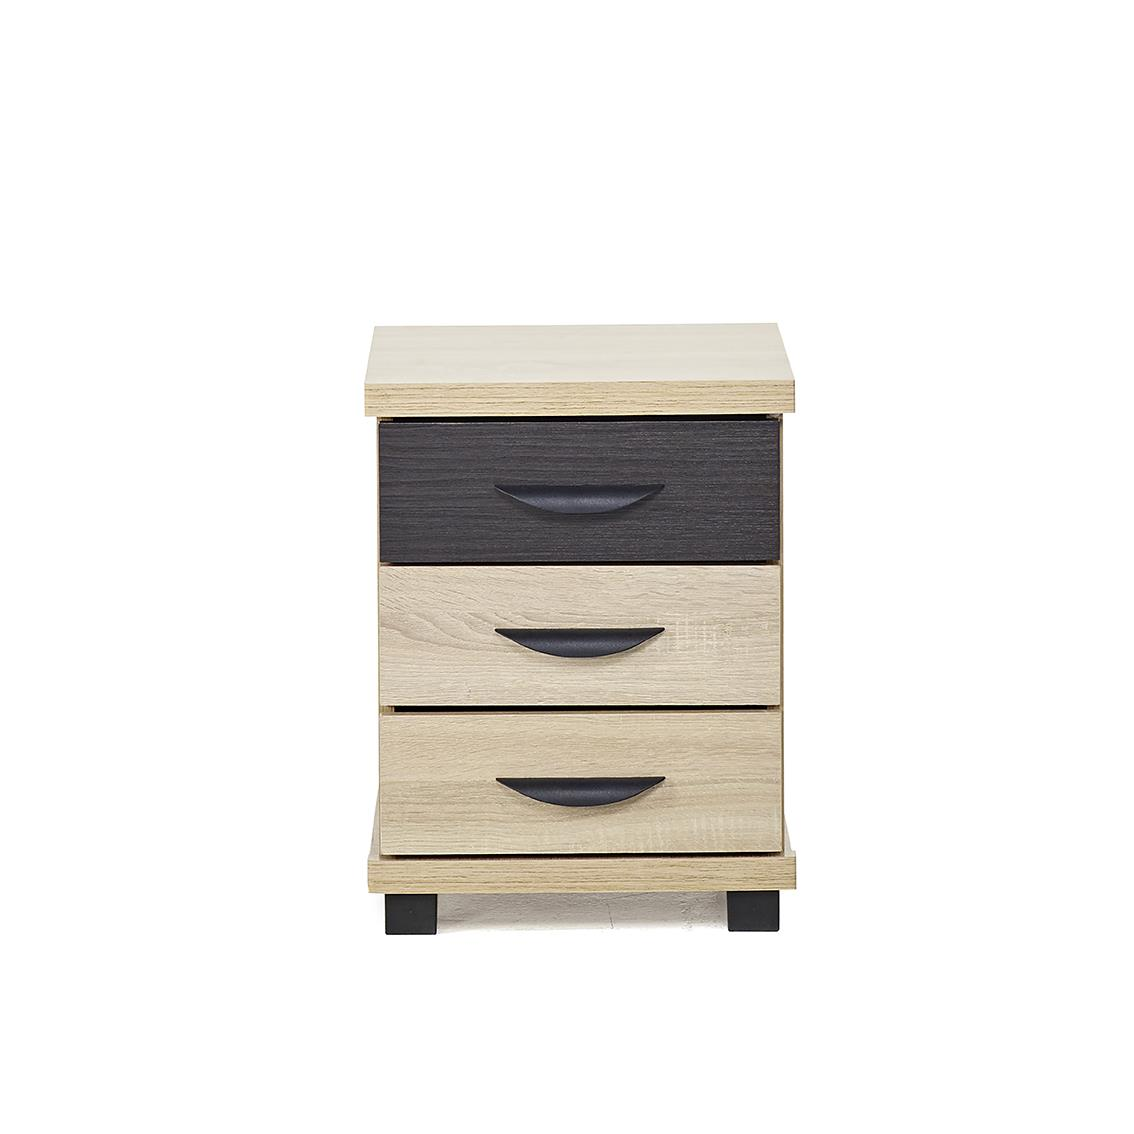 IFC Dominic 3 Drawer Bedside Chest Nightstand Sonoma Oak & Black Modern design